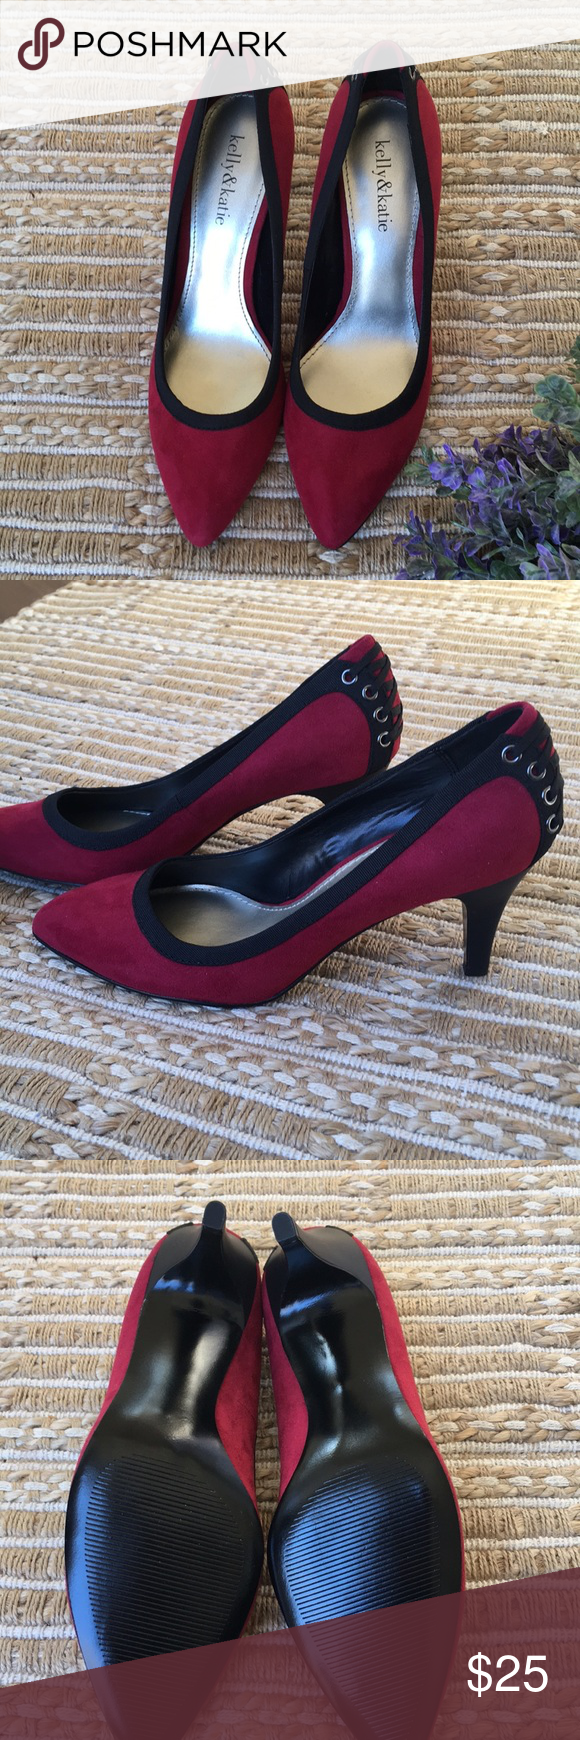 14df94d21b NWOT Kelly & Katie Red Lace Up Heel SZ 7.5 New without tags or box Kelly &  Katie High heels. Beautiful burgundy/red color. Black trim and lace up  detail in ...